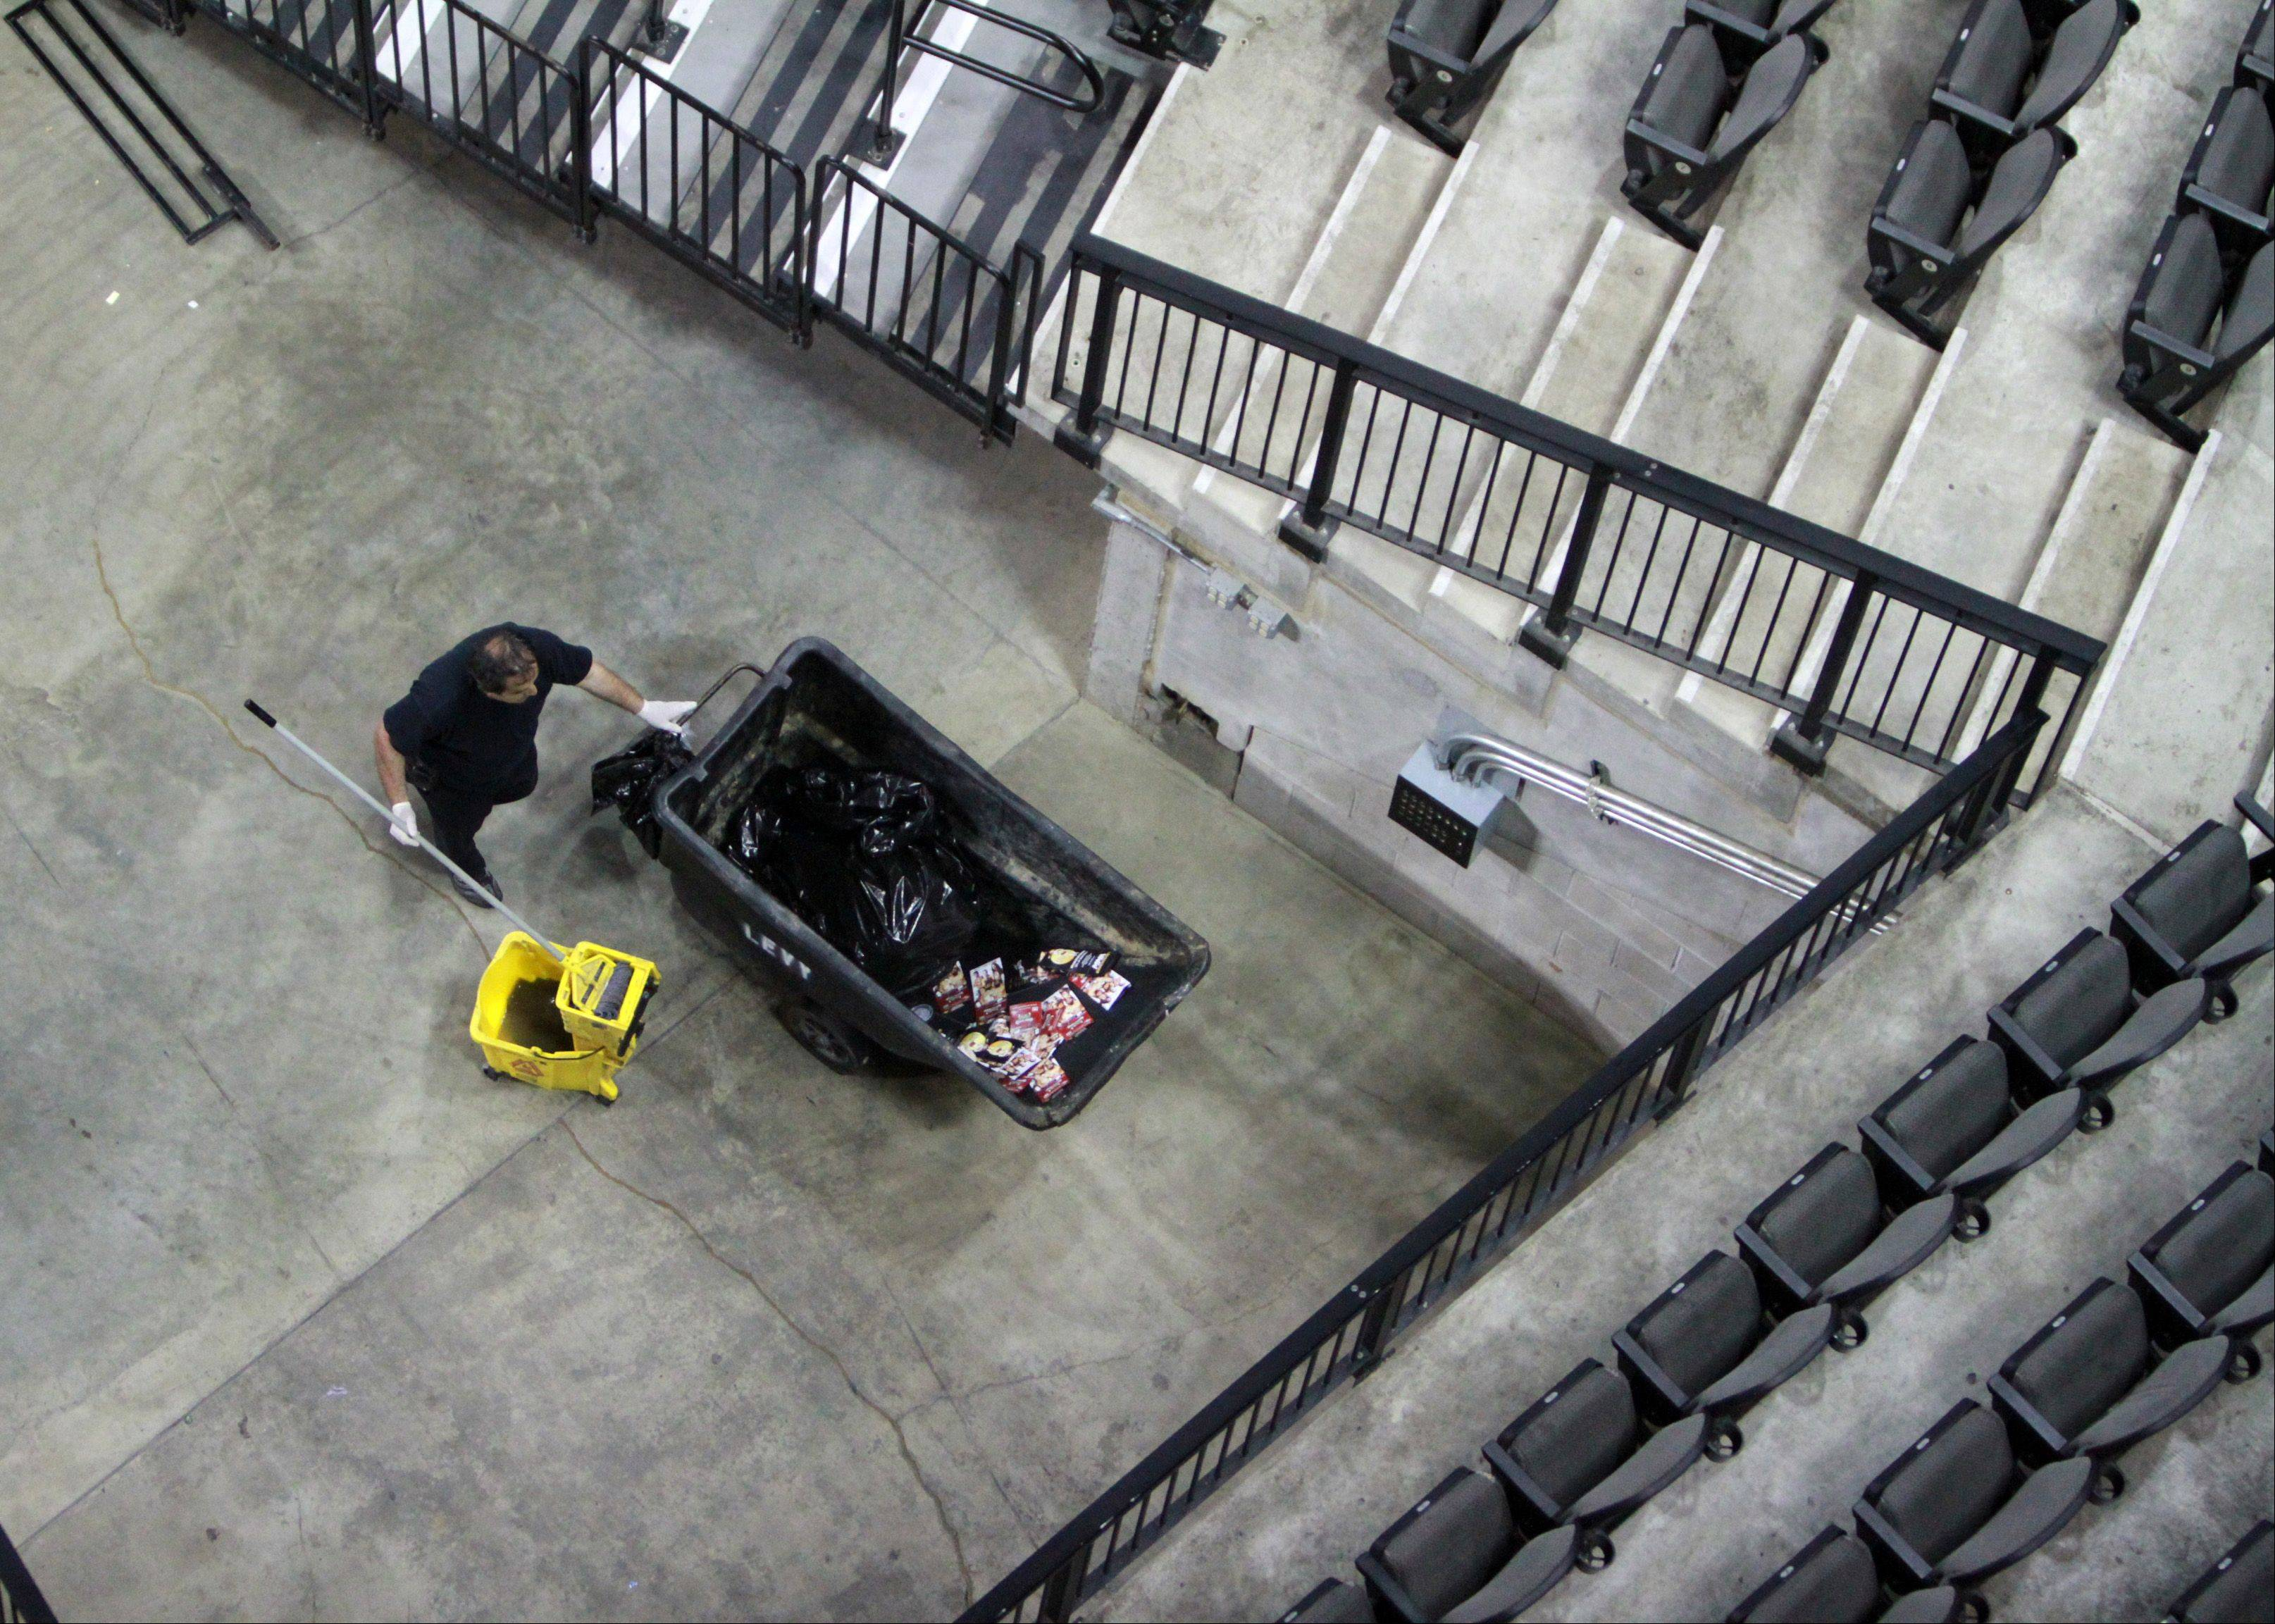 Twenty-five workers are employed to clean the Sears Centre after every one of the 130 shows each year.